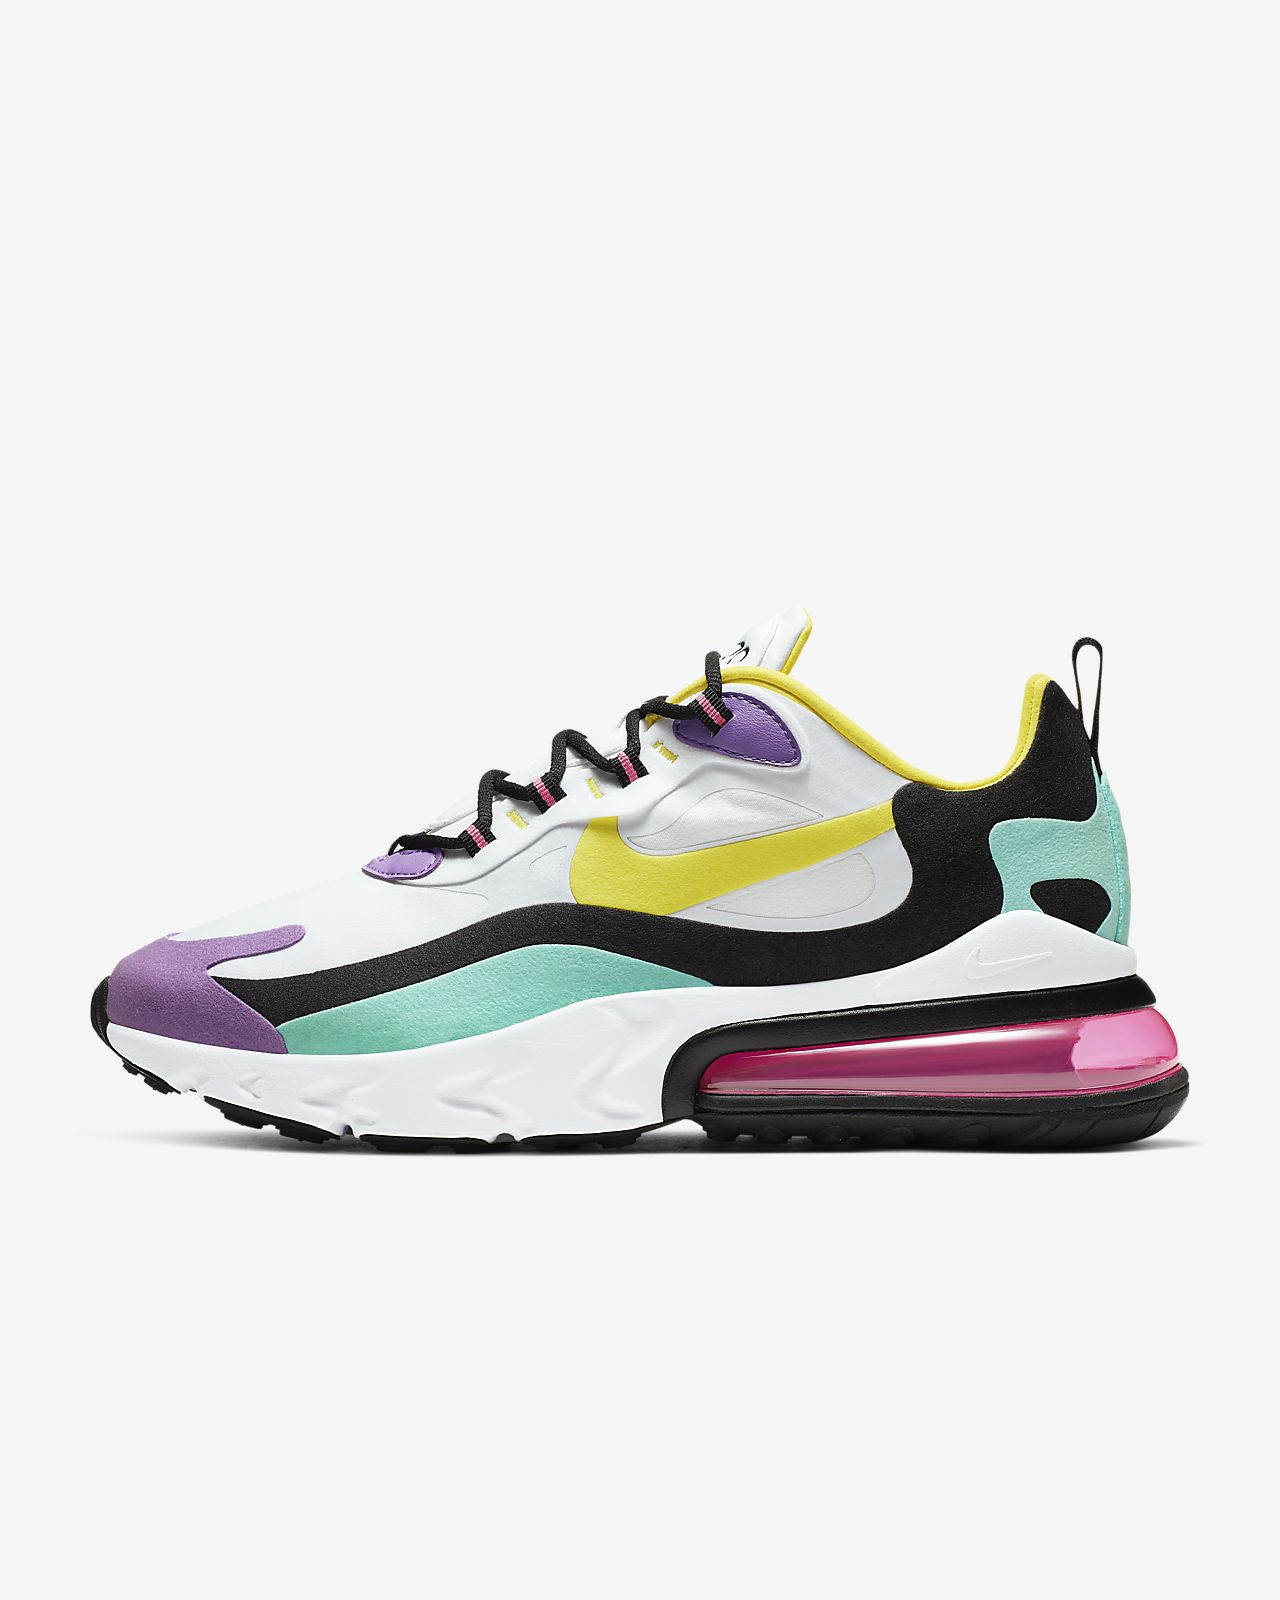 Chaussure Nike Air Max 270 React (Geometric Abstract) pour Homme